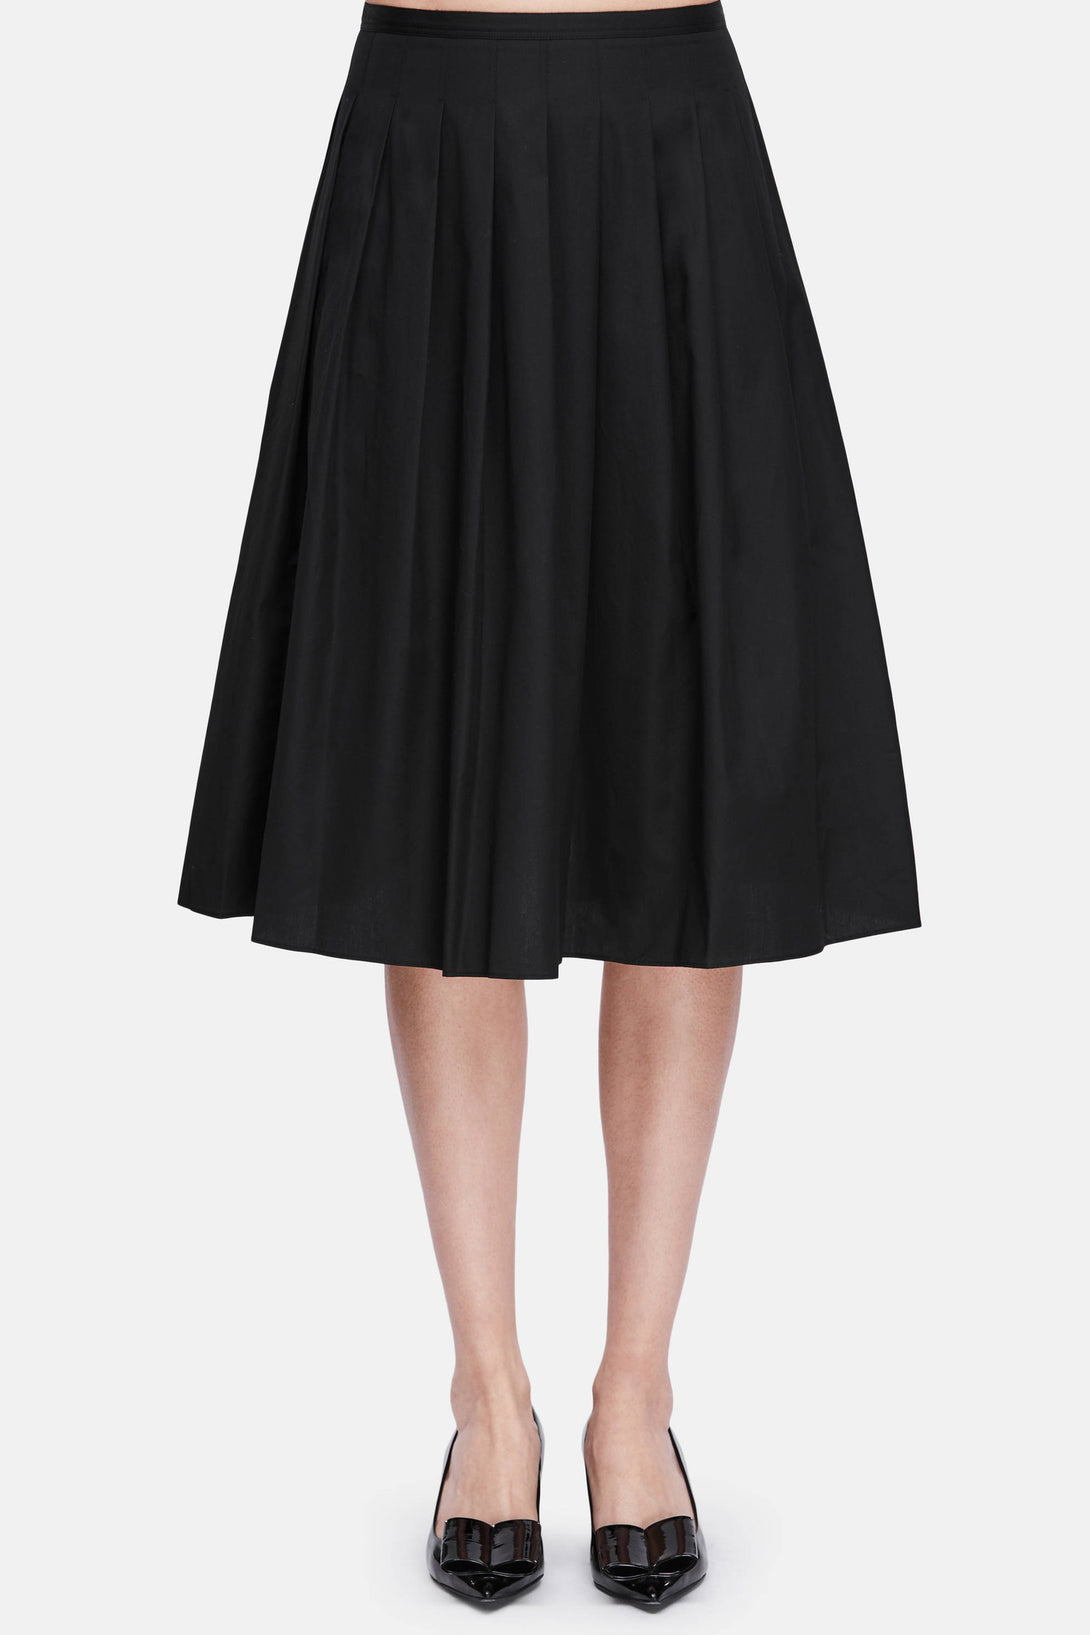 Multi Pleated Skirt - Black